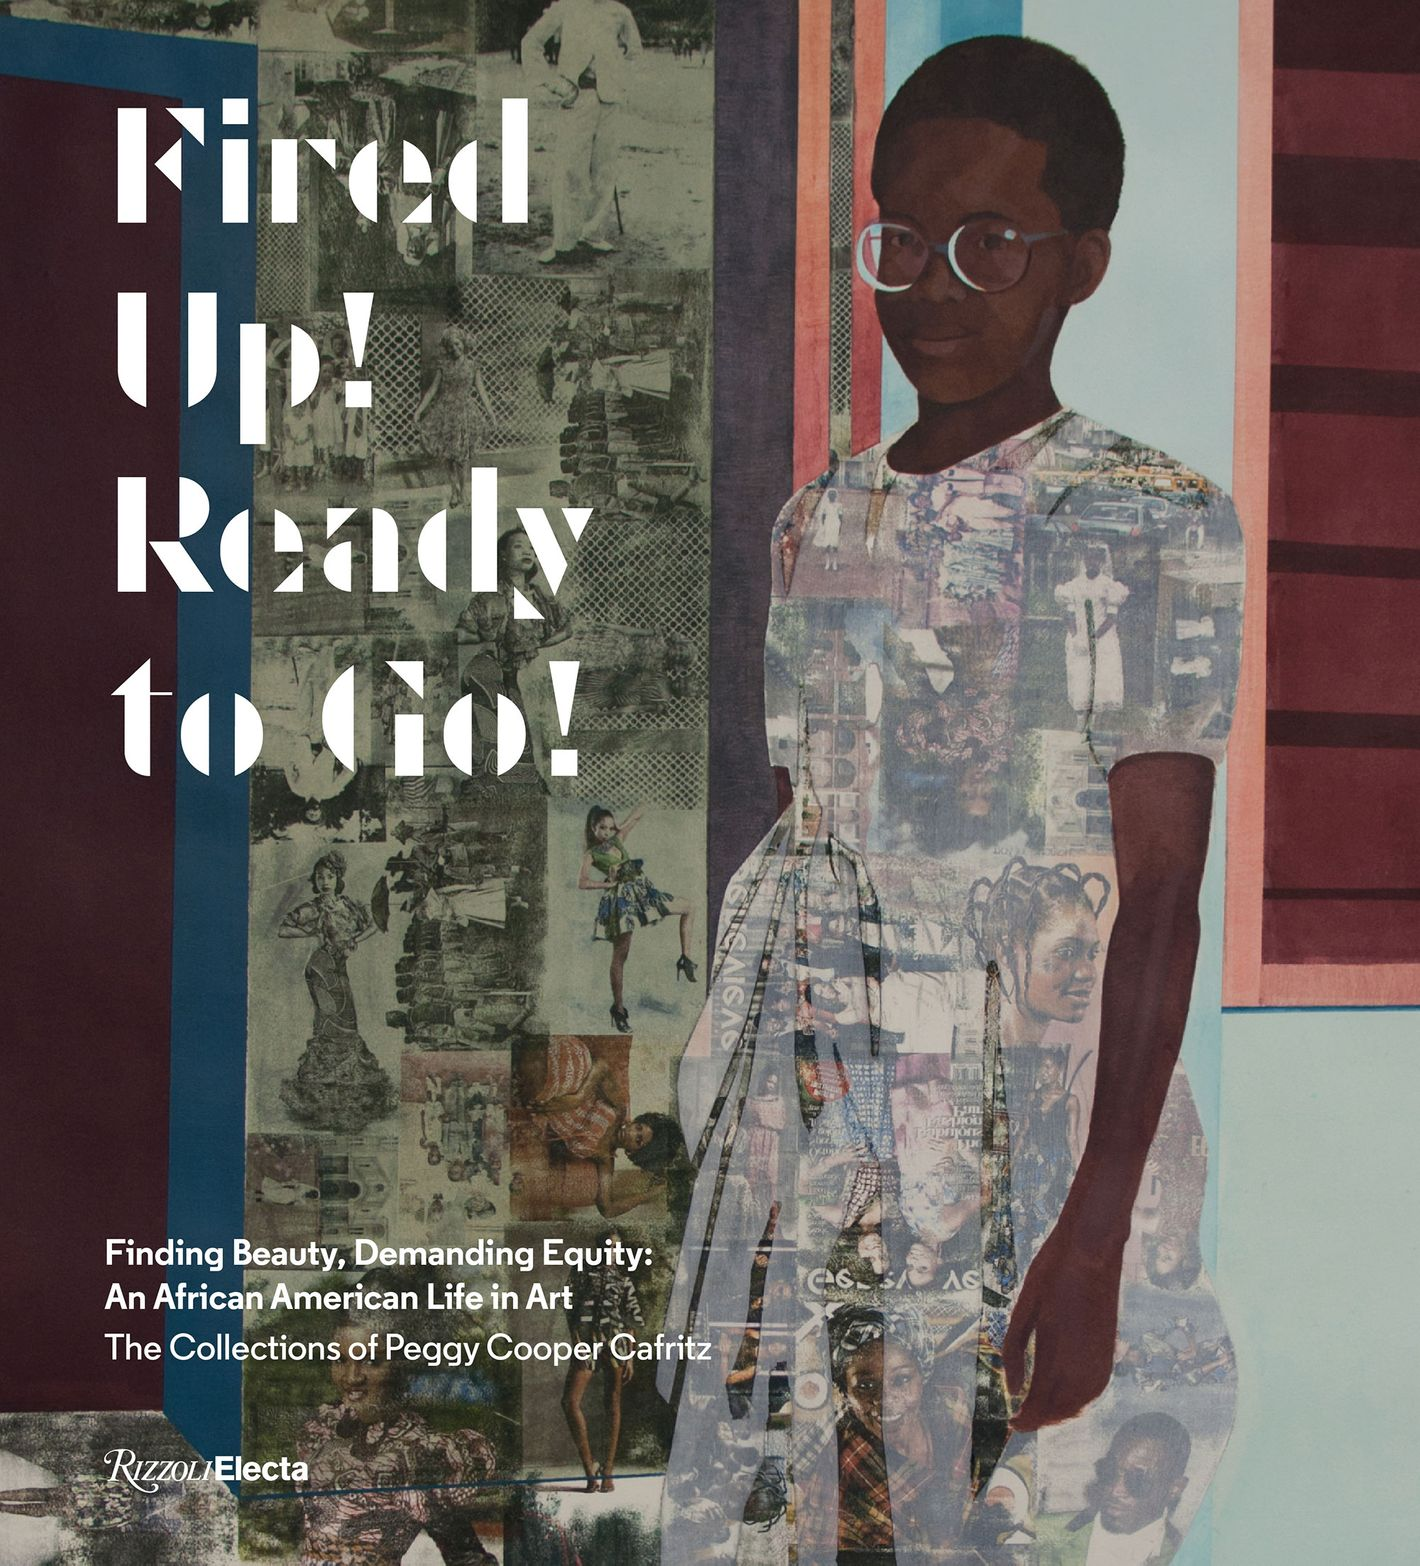 Fired Up! Ready to Go!: Finding Beauty, Demanding Equity: An African American Life in Art. The Collections of Peggy Cooper Cafritz by Peggy Cooper Cafritz